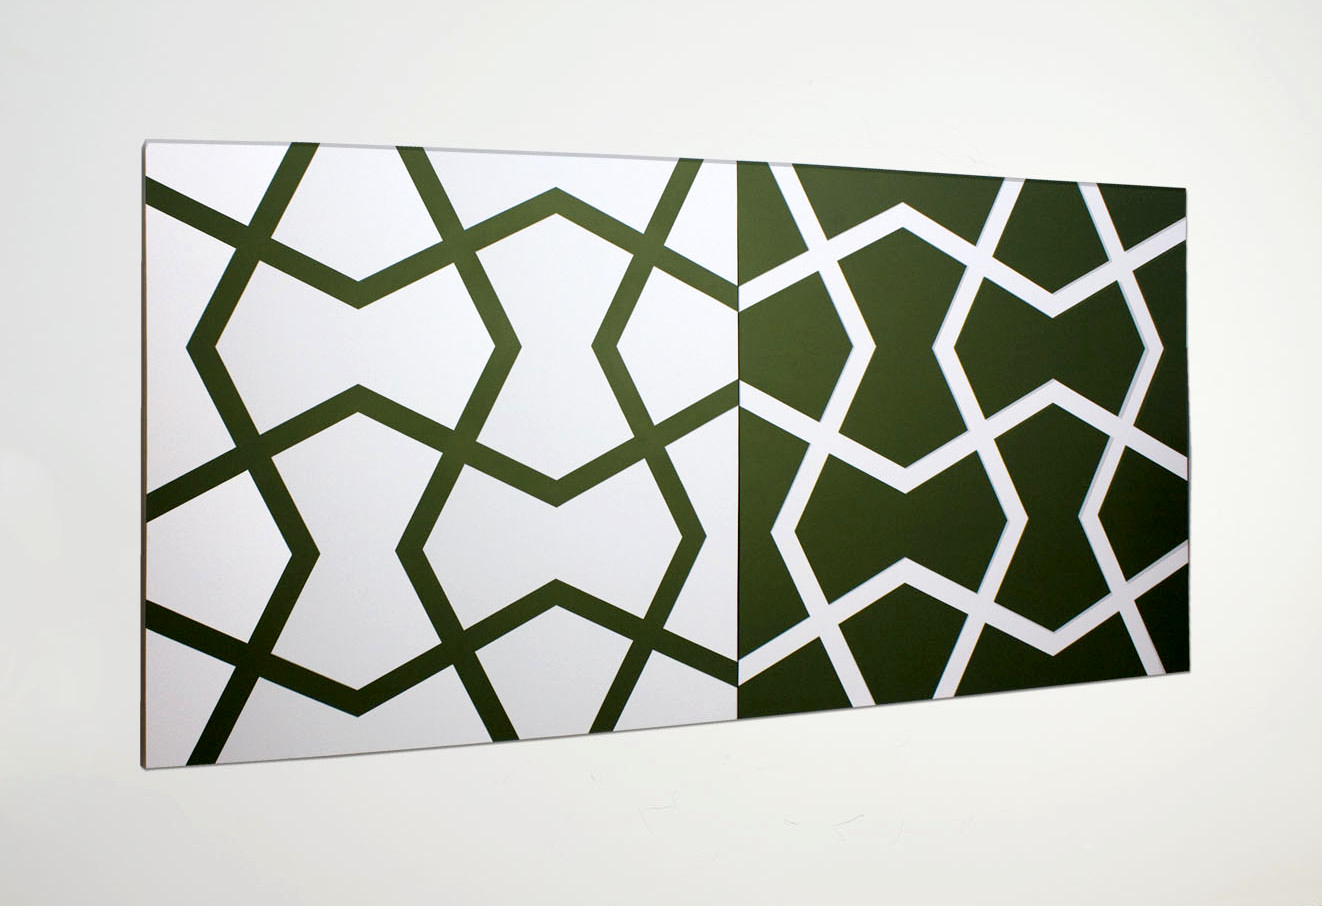 J  ali XXIV: Hunter Green and White   2011. Acrylic on 2 canvases. 72 x 144 in., 182.9 x 365.8 cm.